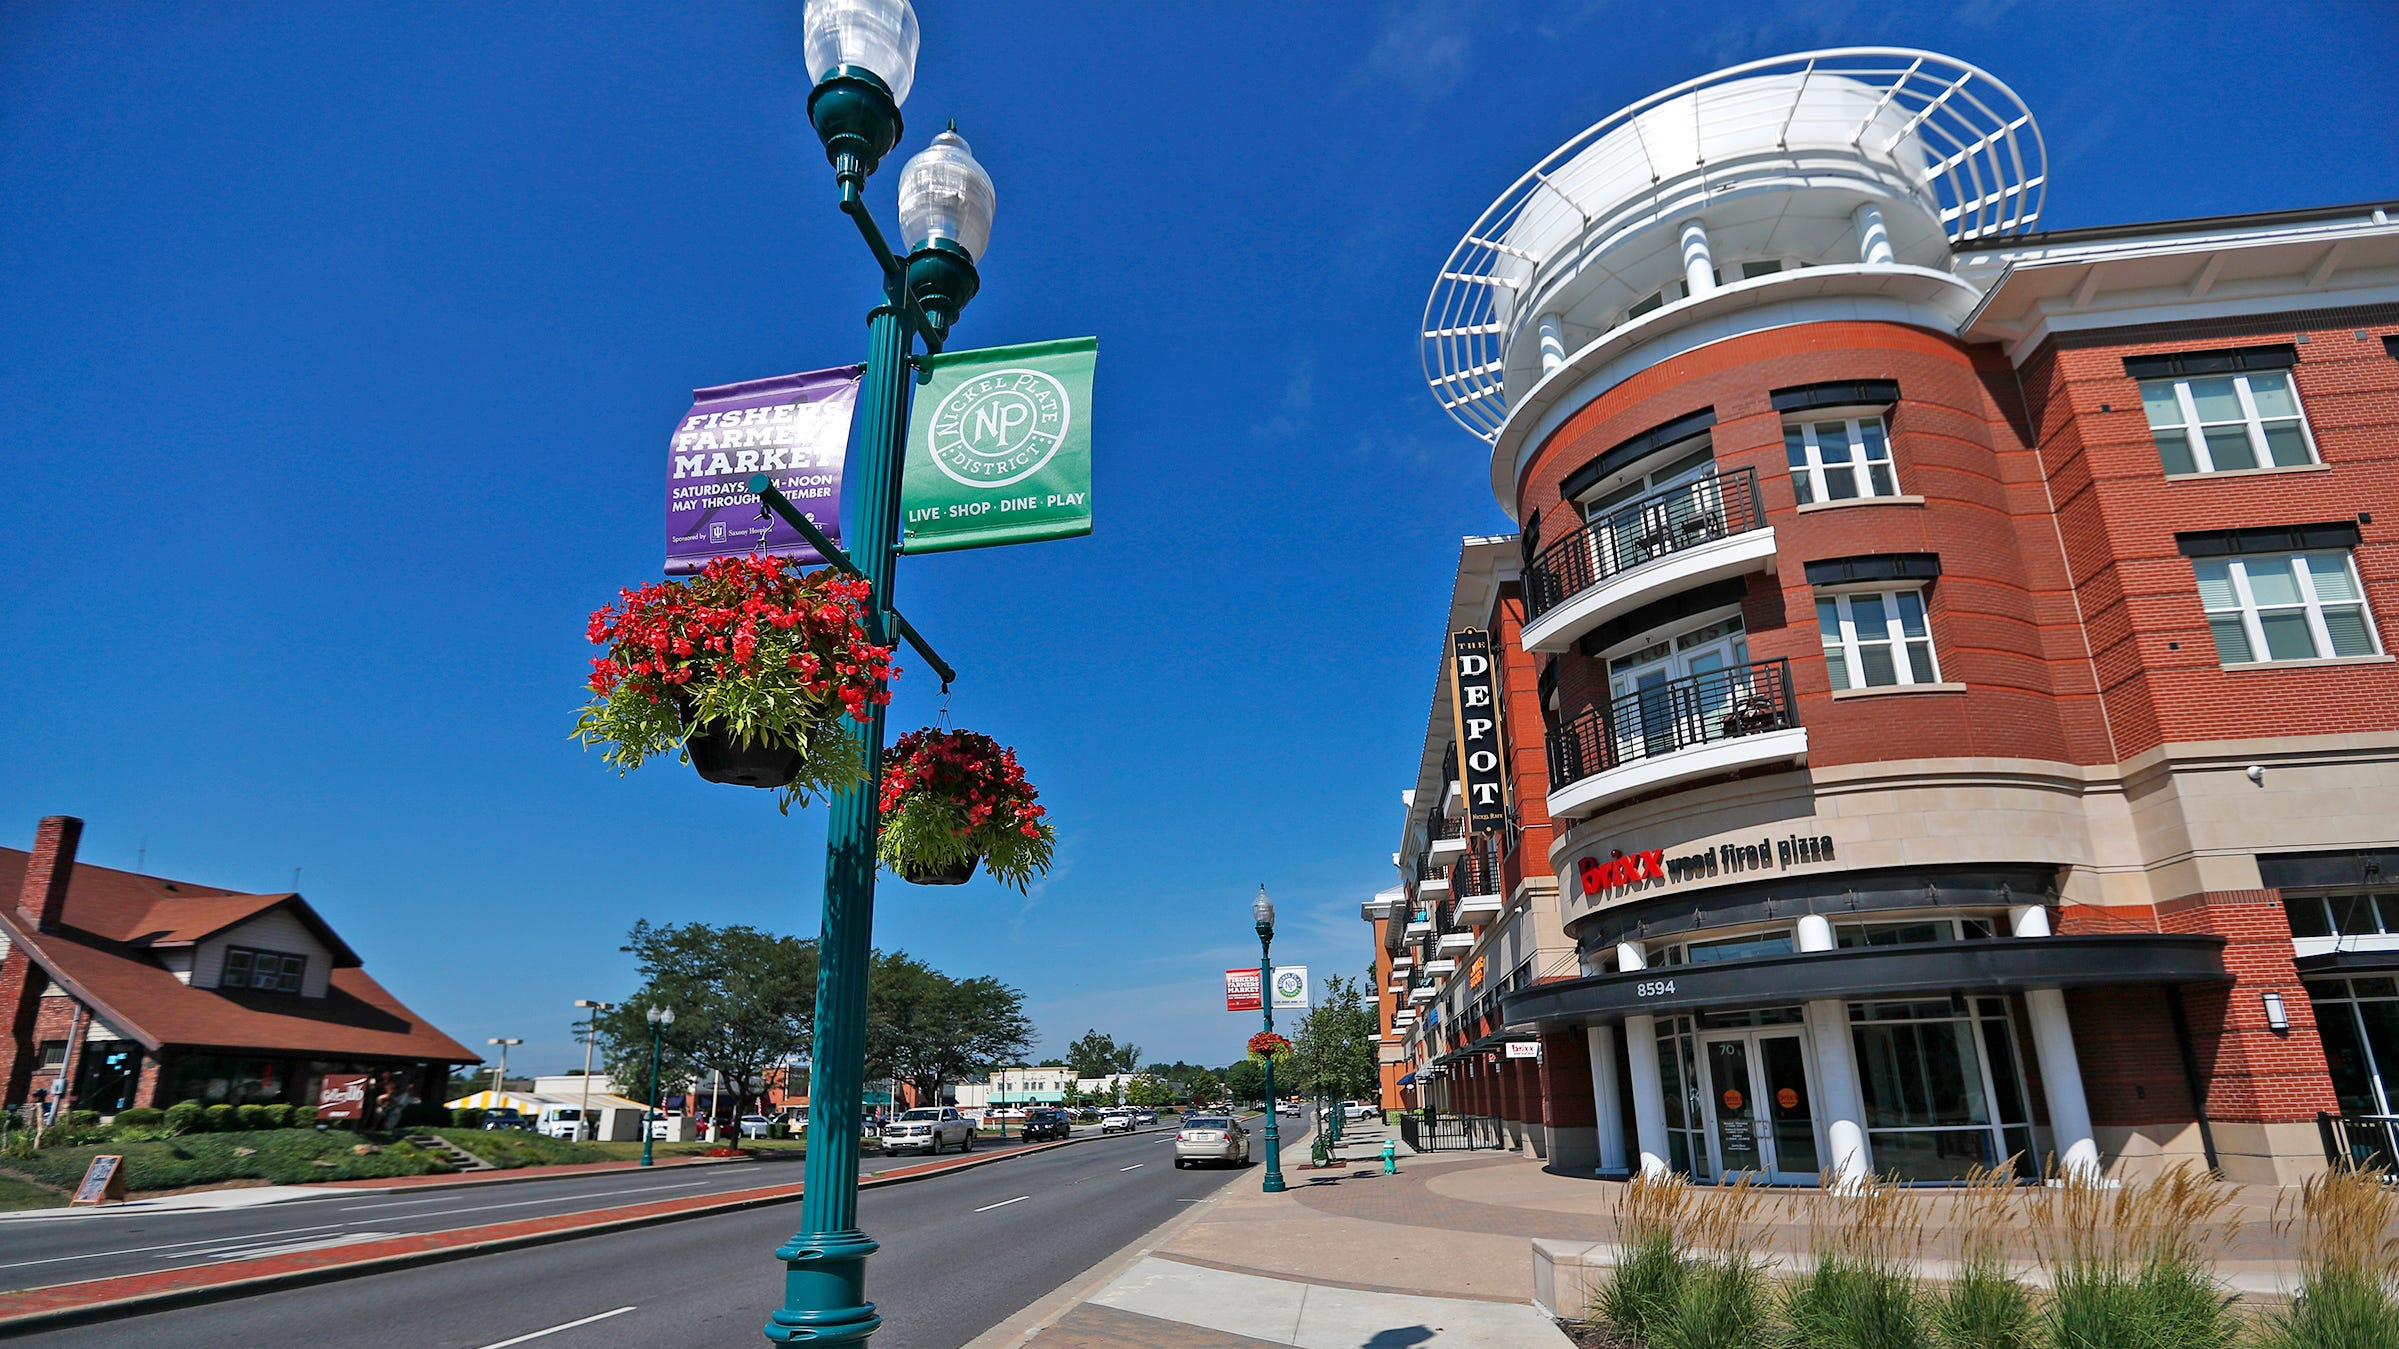 Fishers apartment rollouts have been in a lull. That's about to change.